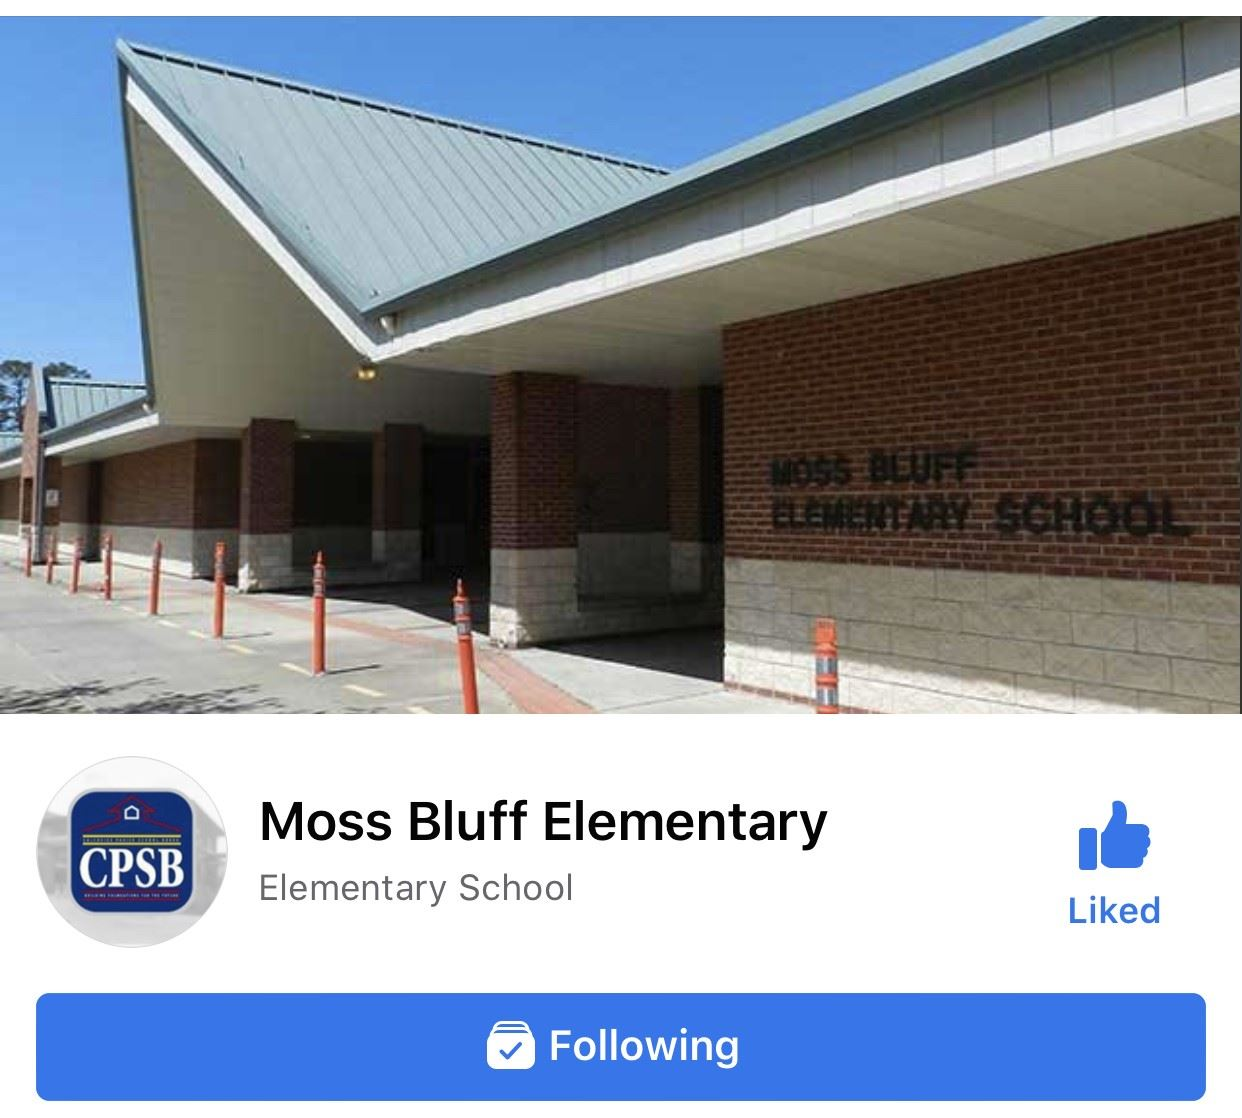 Moss Bluff Elementary Official Facebook Page - Please spread the news about our Official FB page to stay up to date with important information!  WE MISS YOU ALL!  STAY WELL!